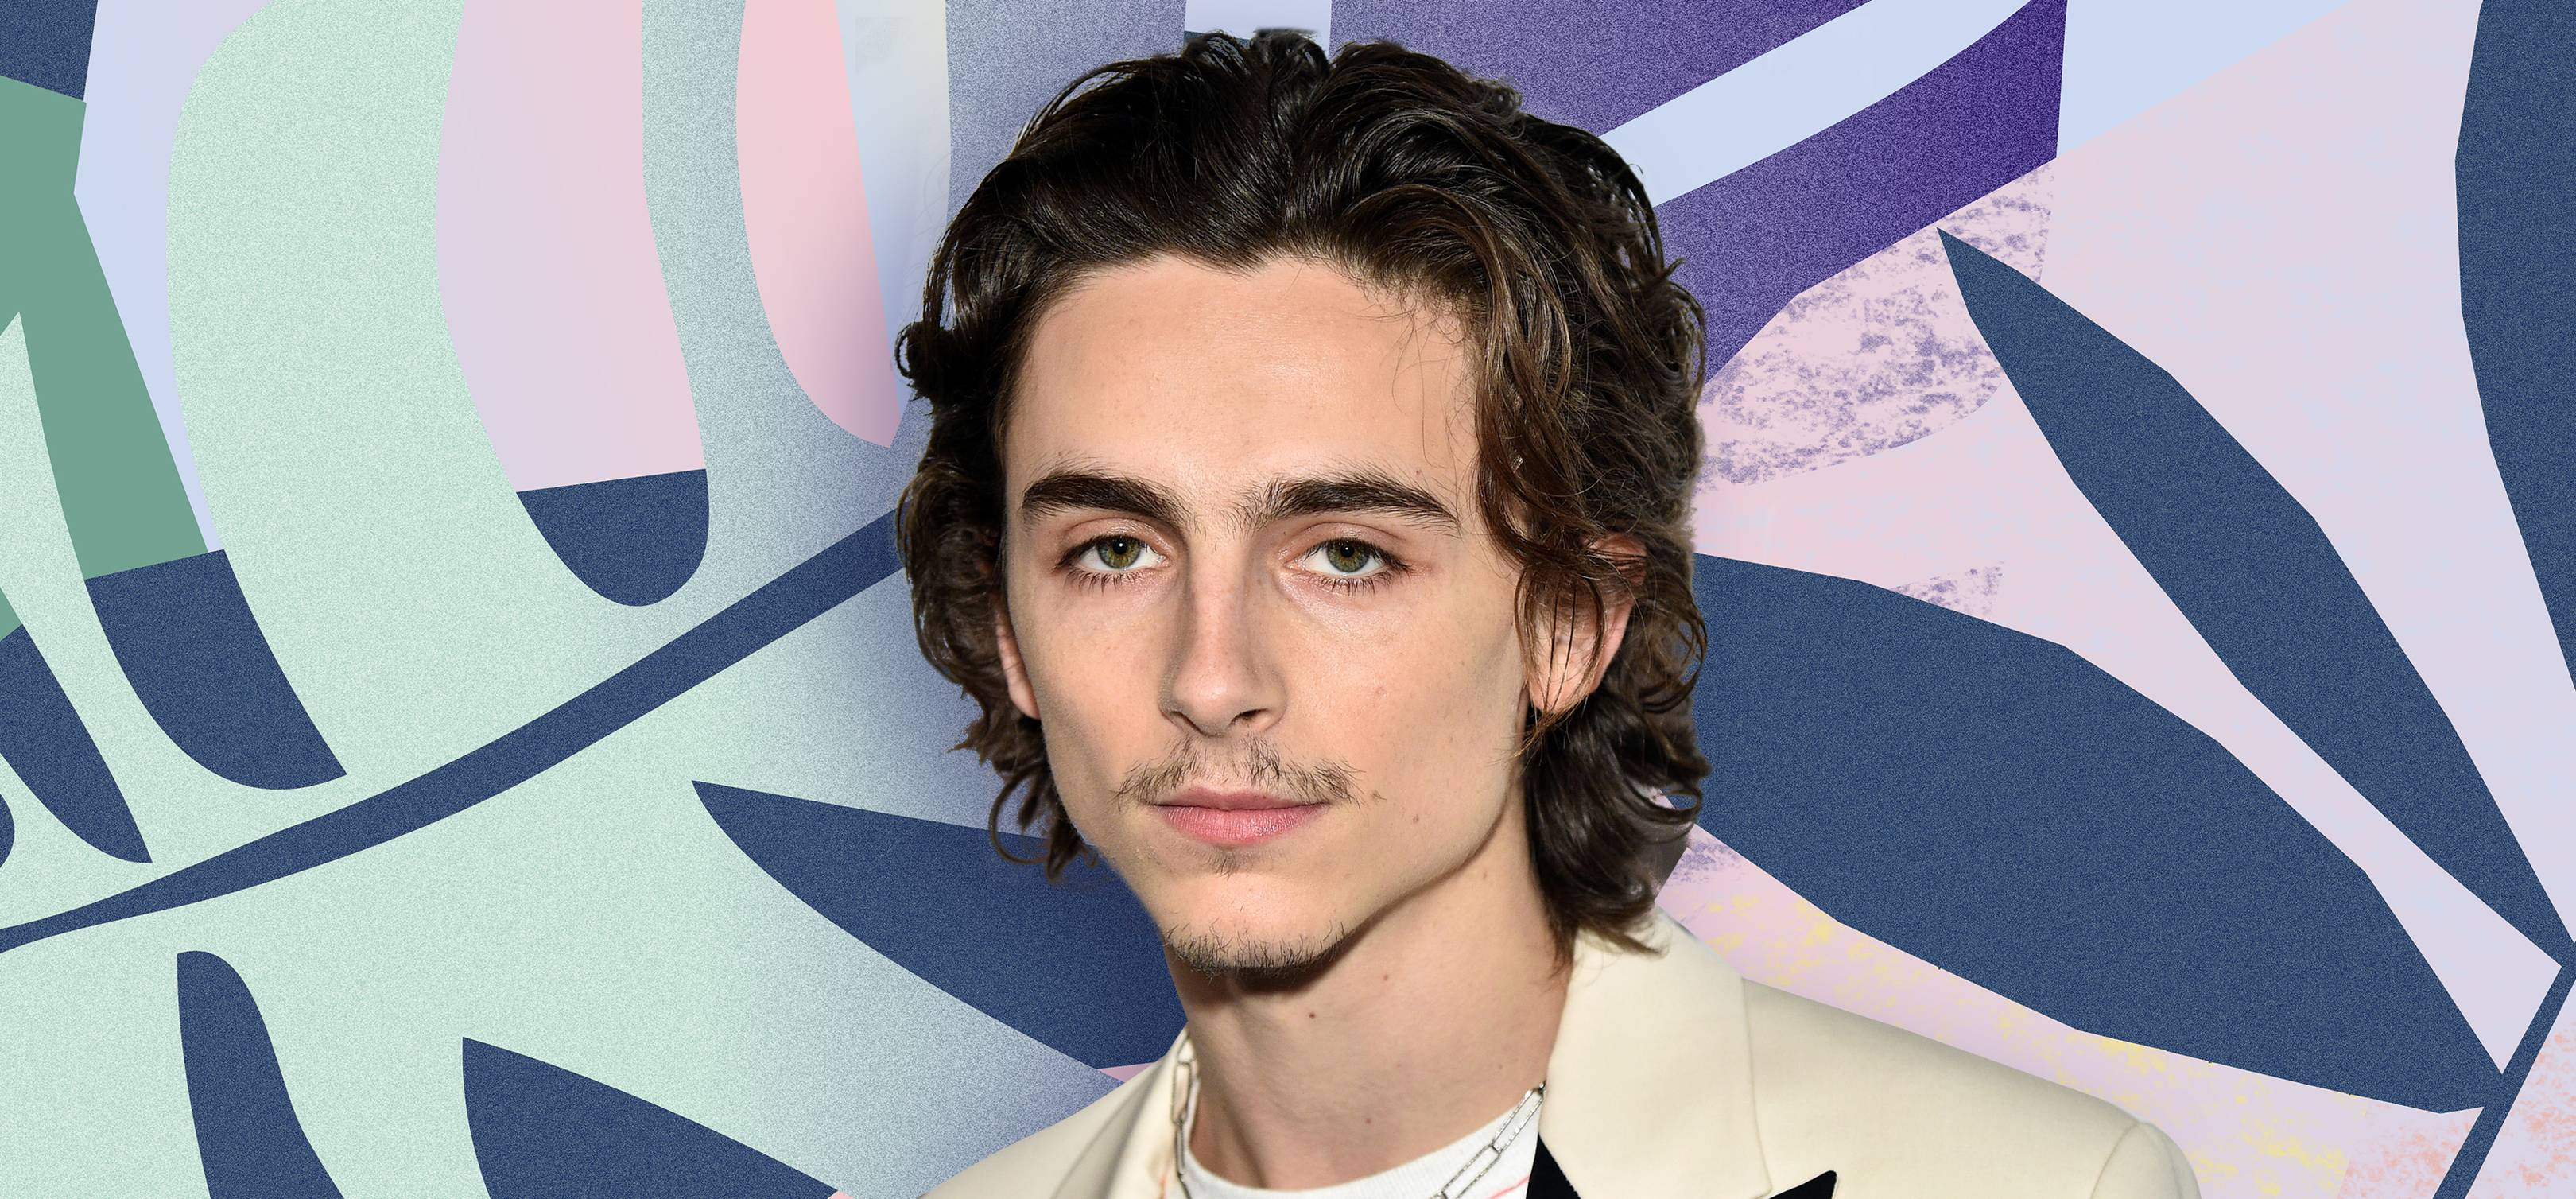 Timothée Chalamet has a moustache that's divided the internet, so which team are you on?